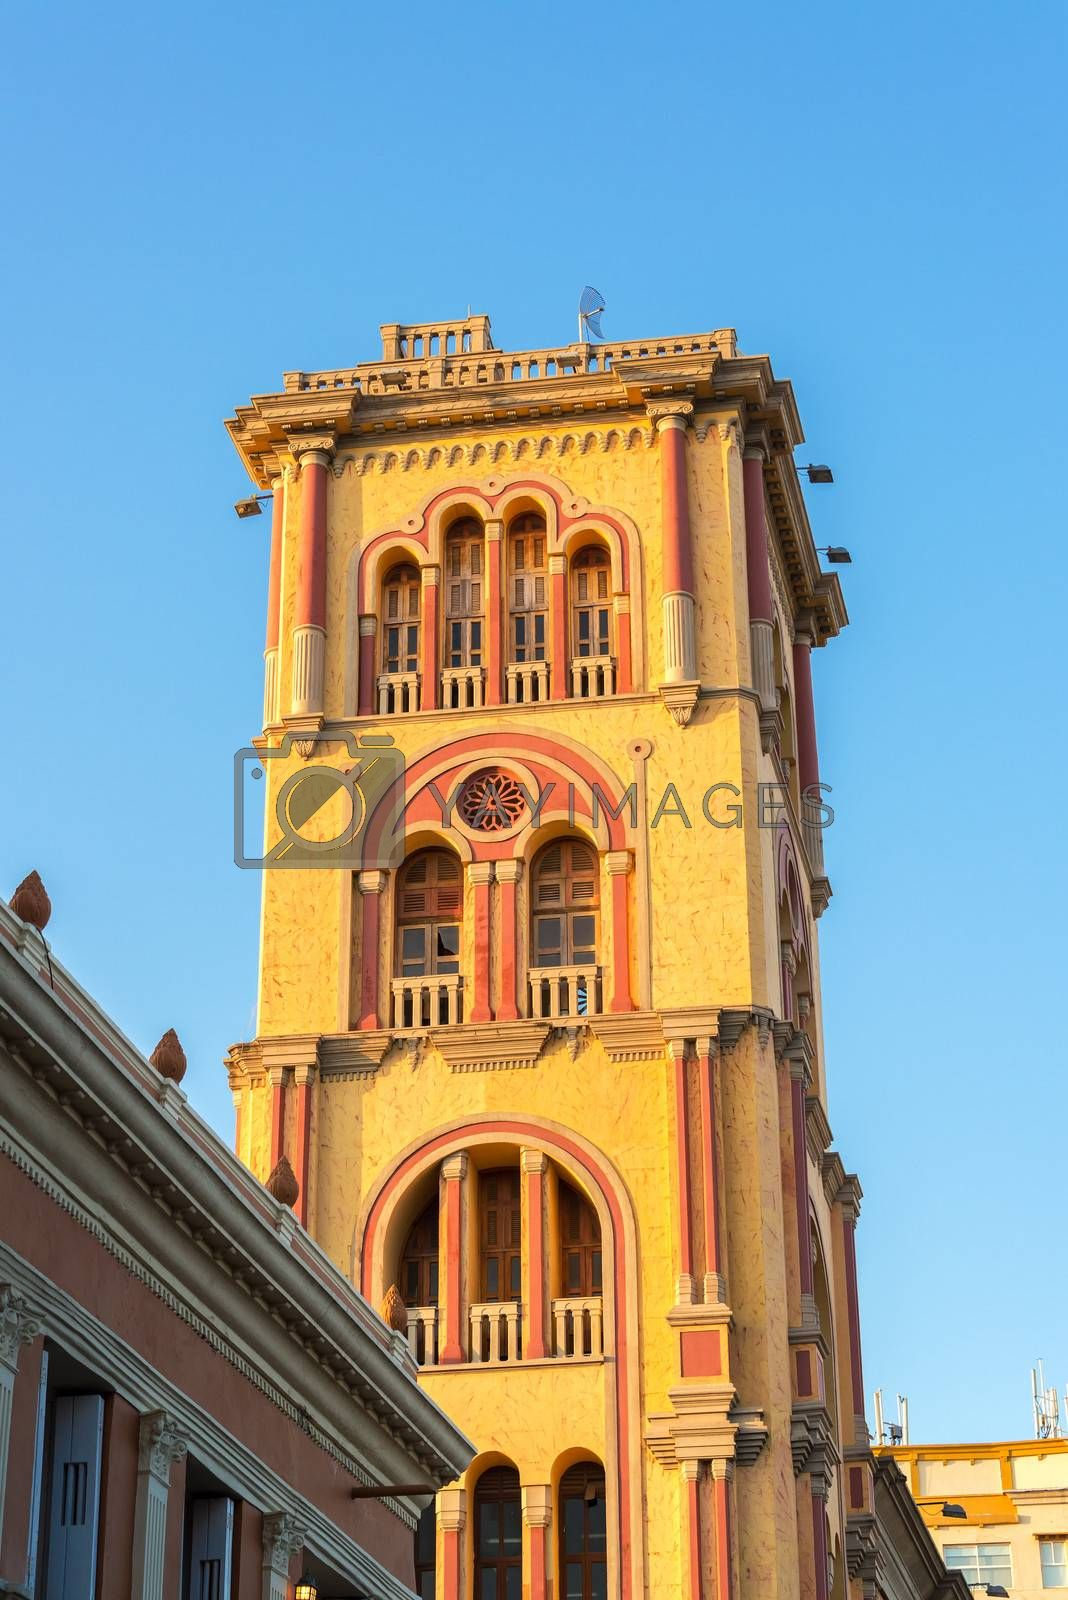 Tower of Cartagena Public University bathed in golden late afternoon light in Cartagena, Colombia